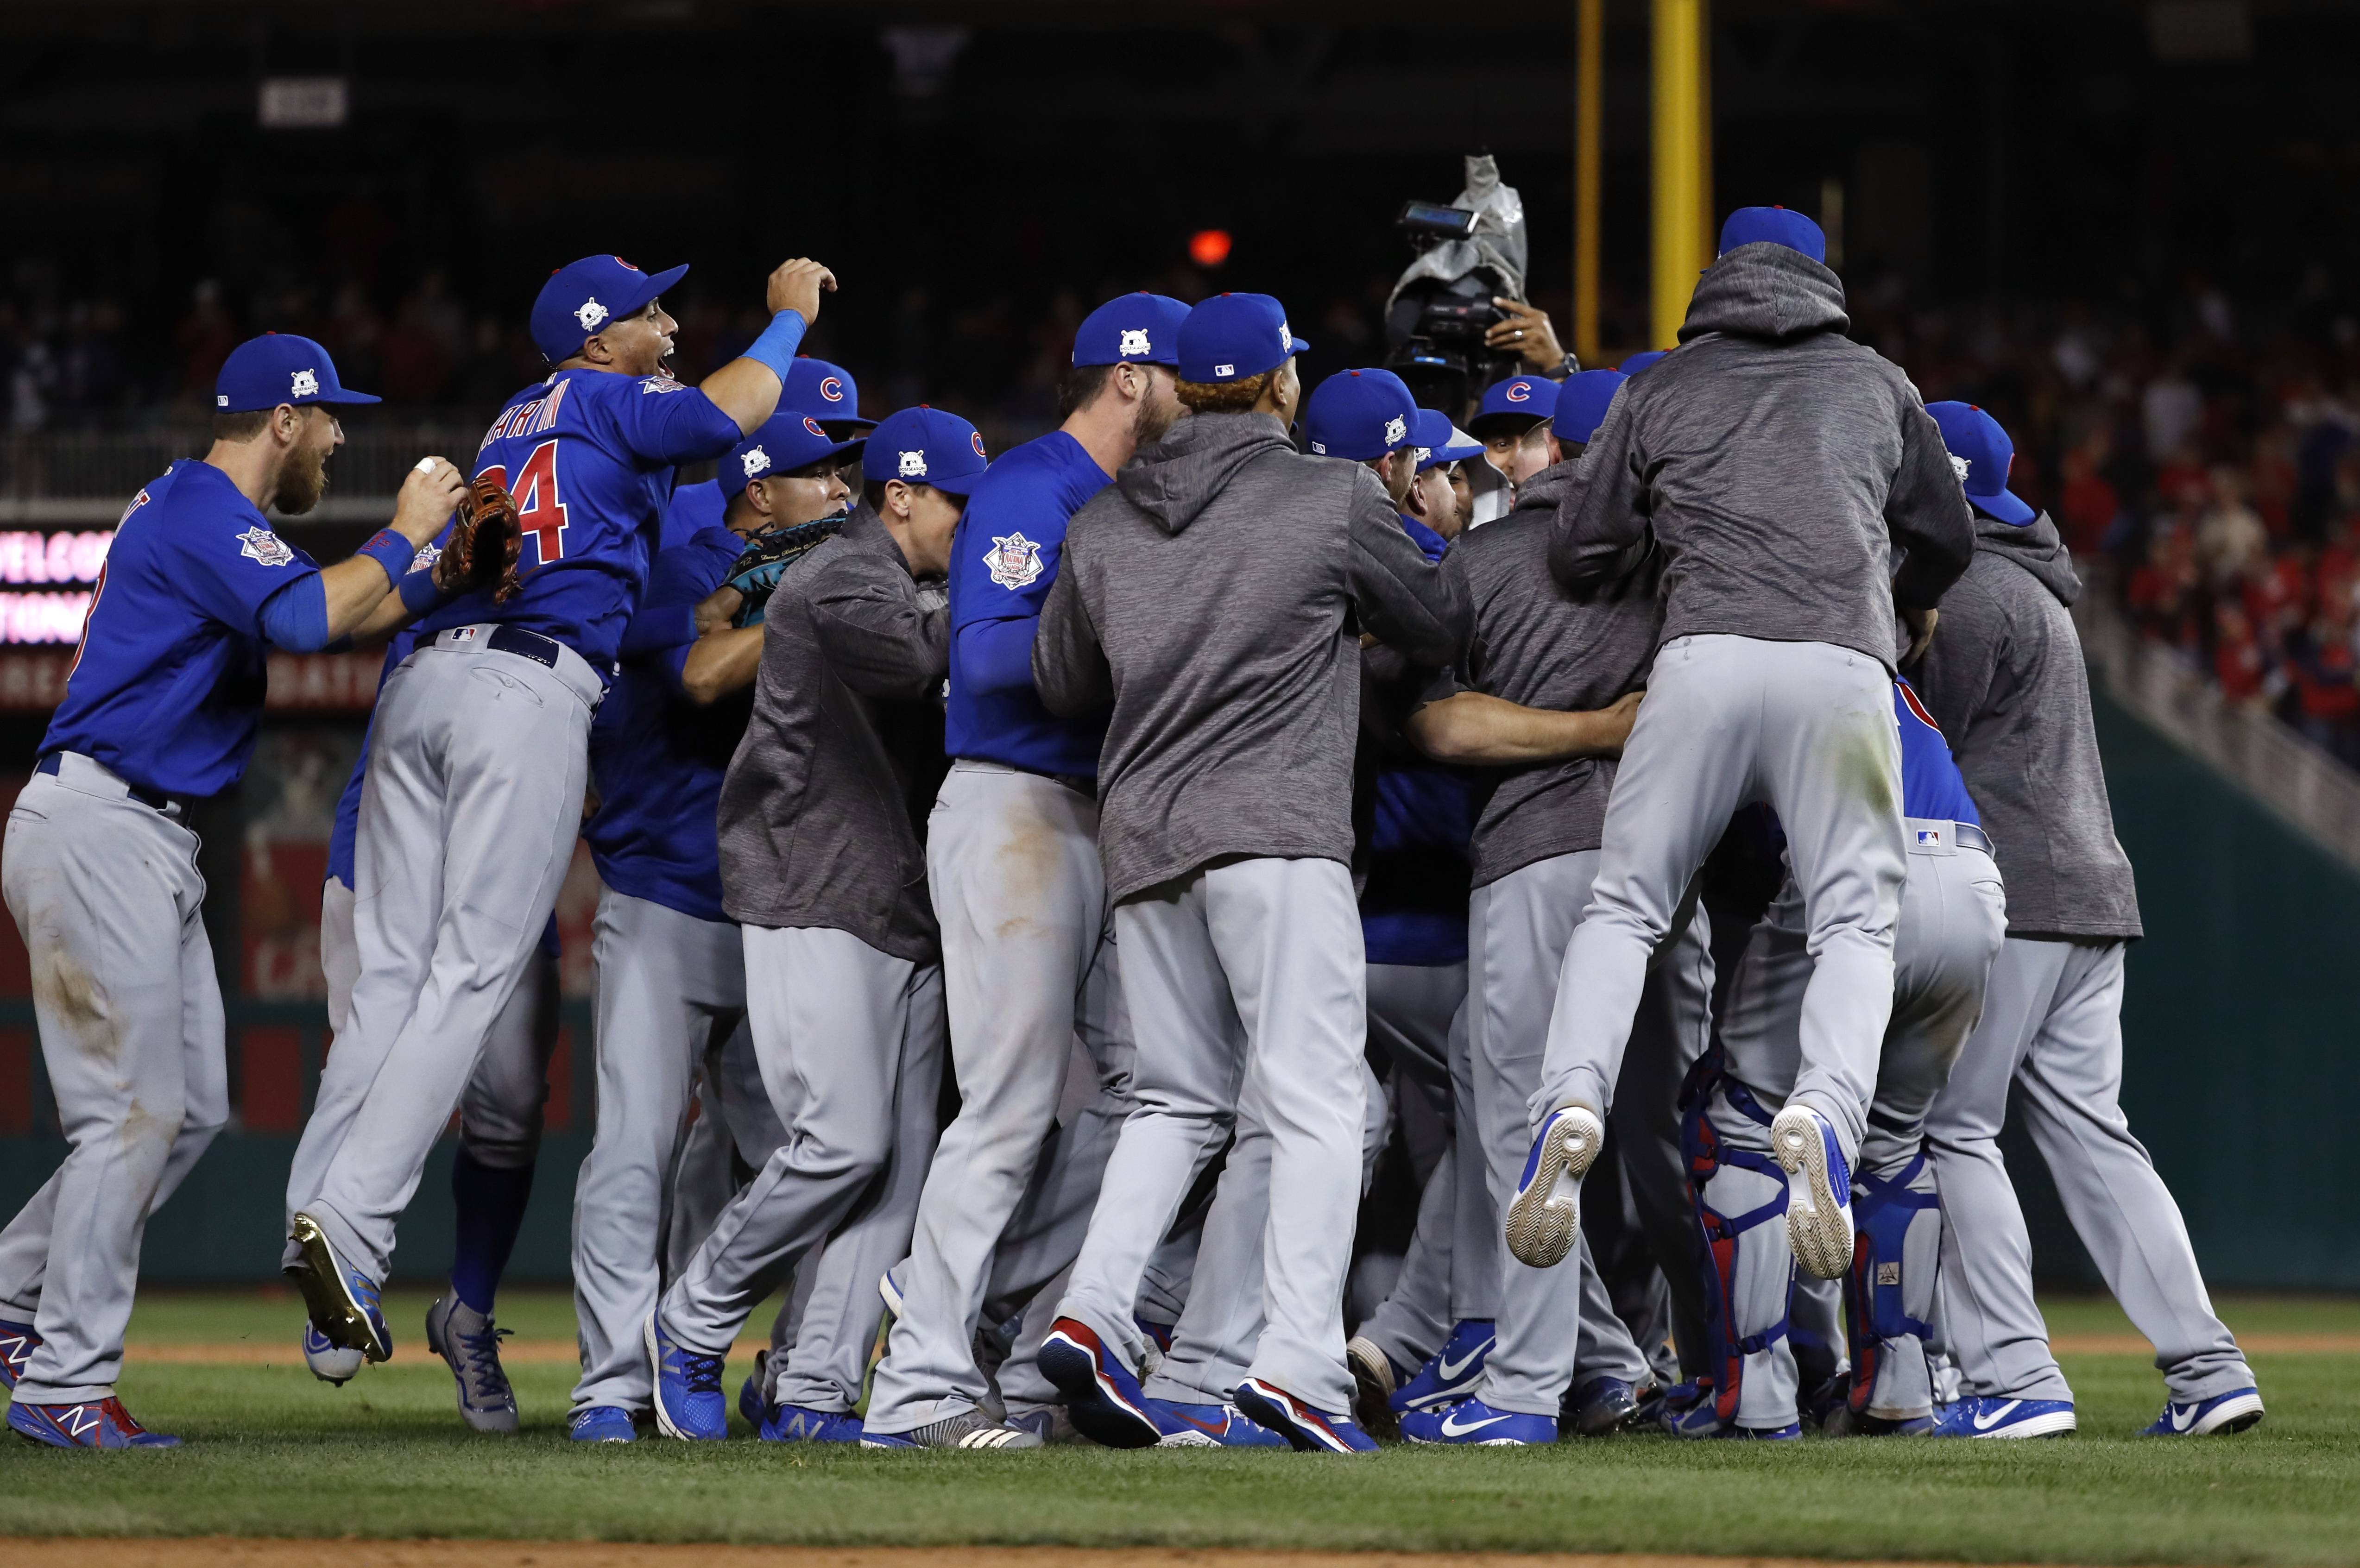 The Chicago Cubs celebrate after beating the Washington Nationals 9-8 to to win baseball's National League division series, at Nationals Park in Washington.